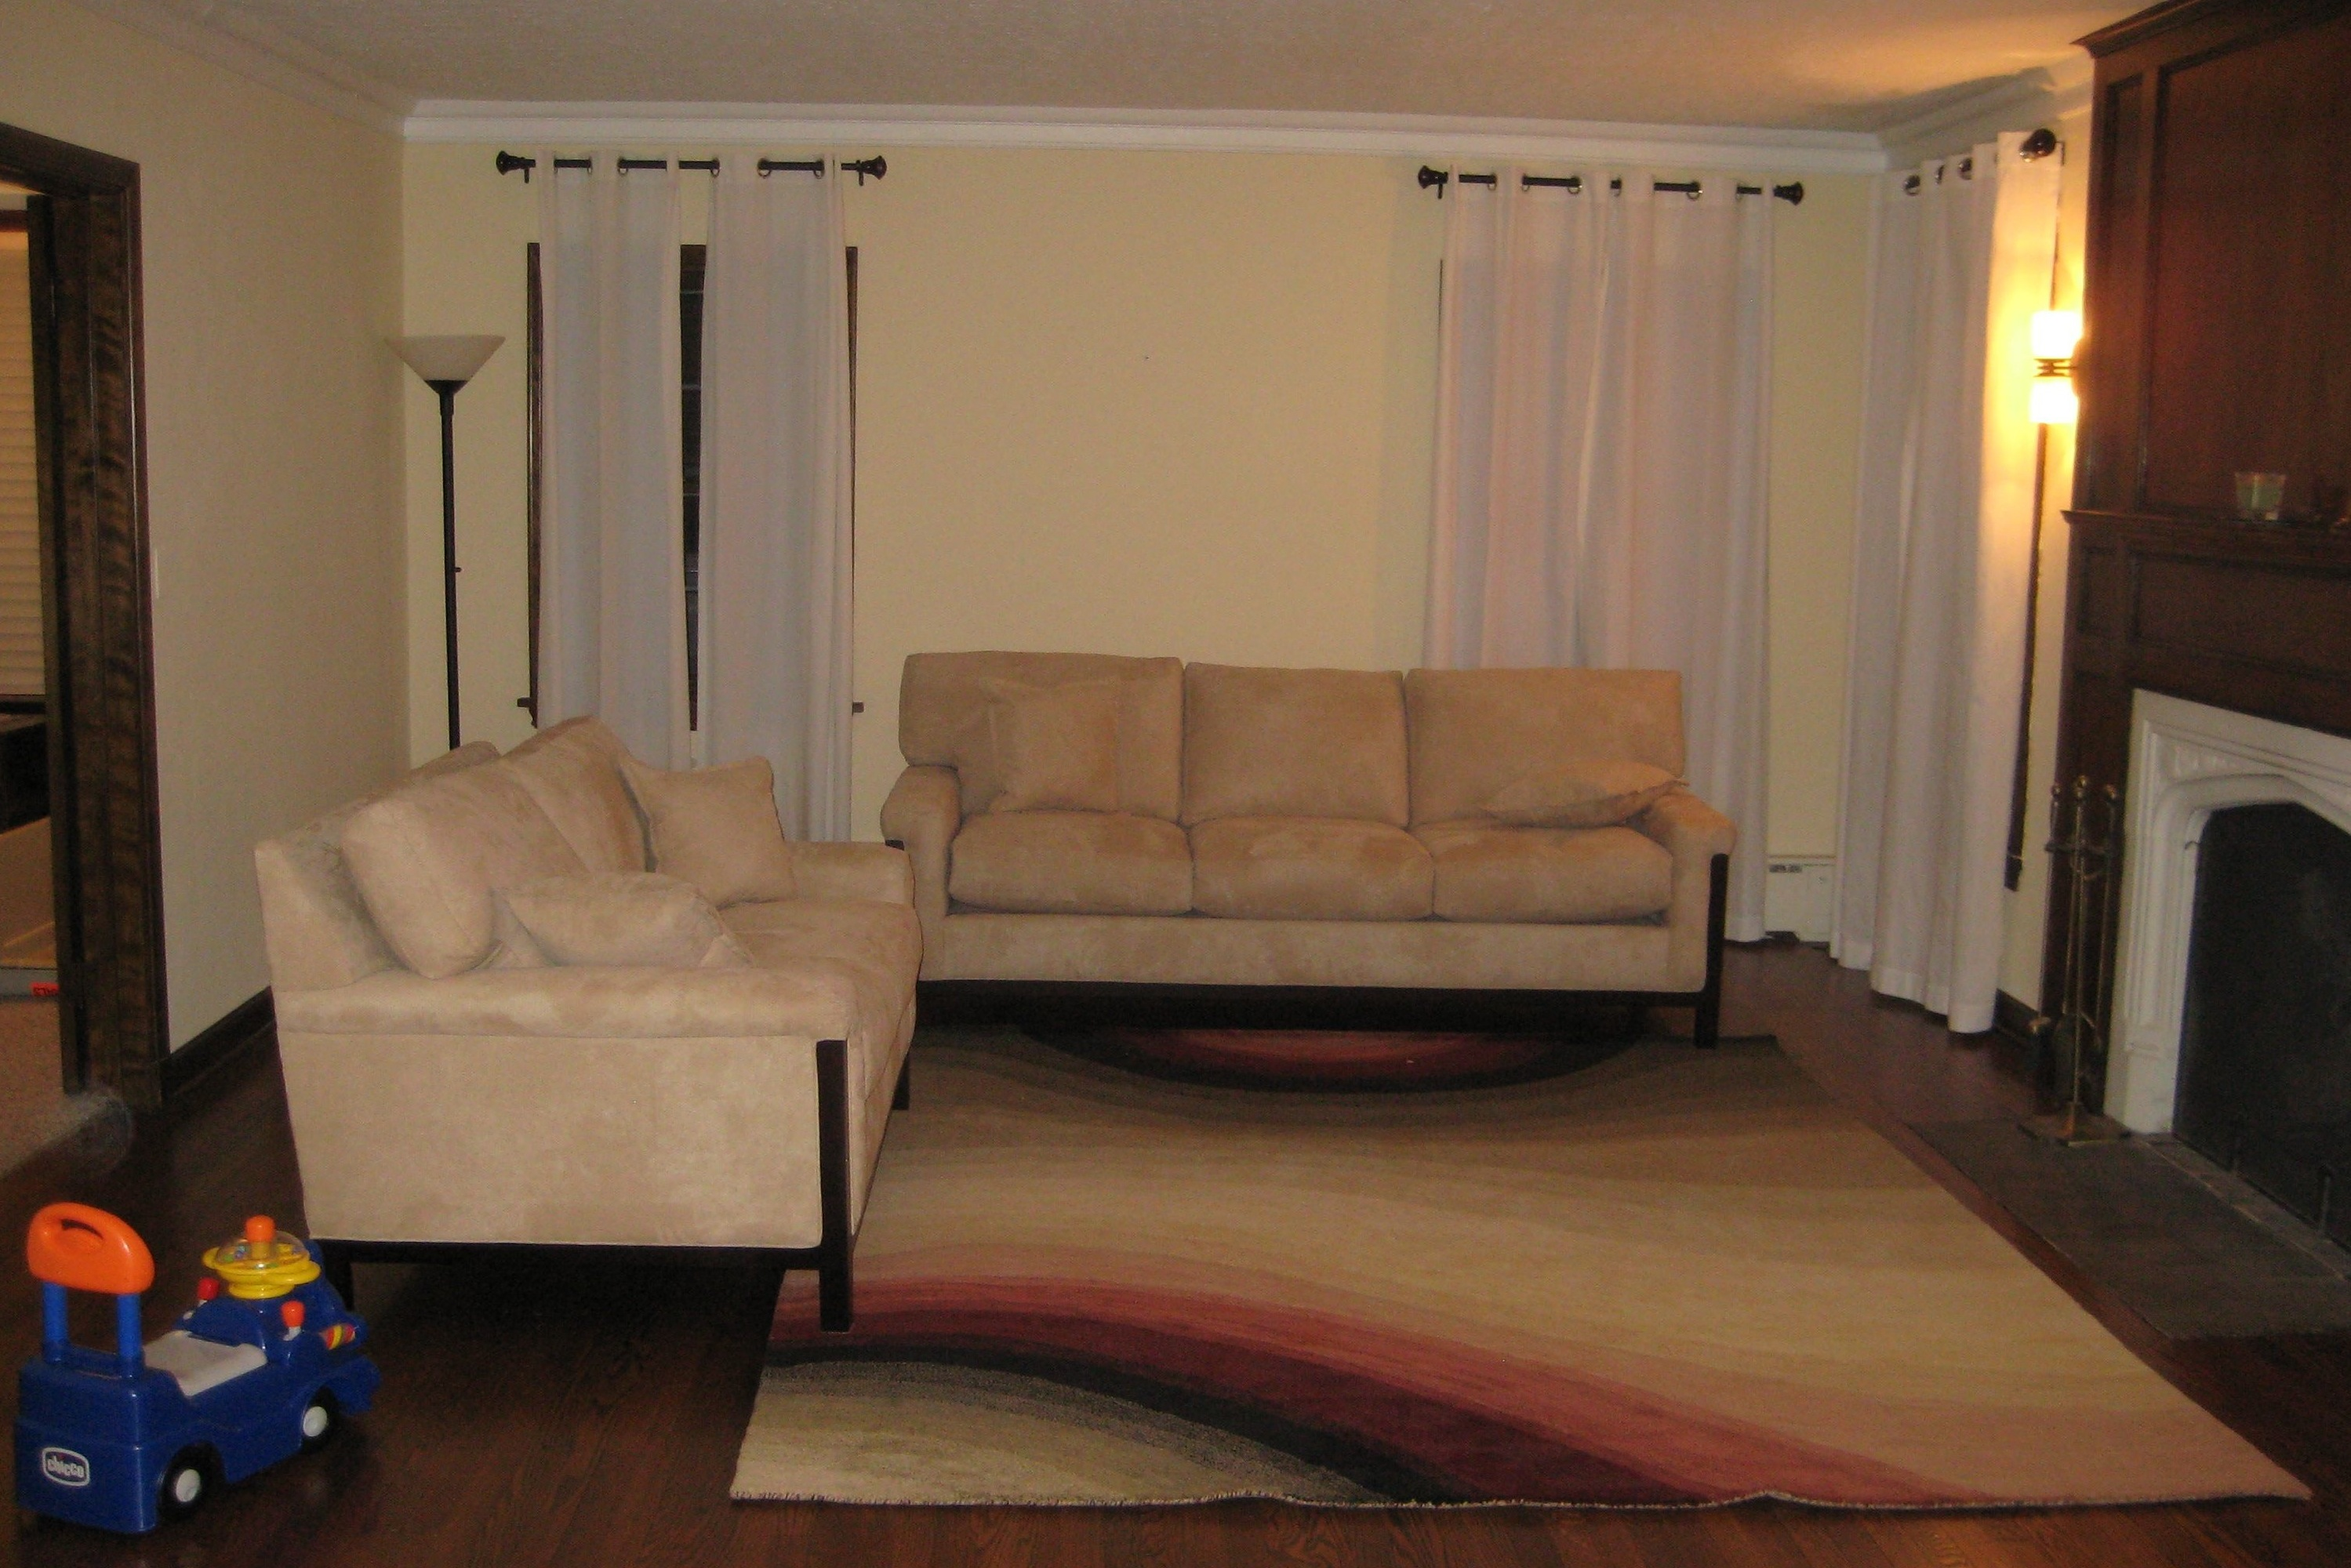 Home Decor Help Living Rooms With Hardwood Floors Interior Decorating